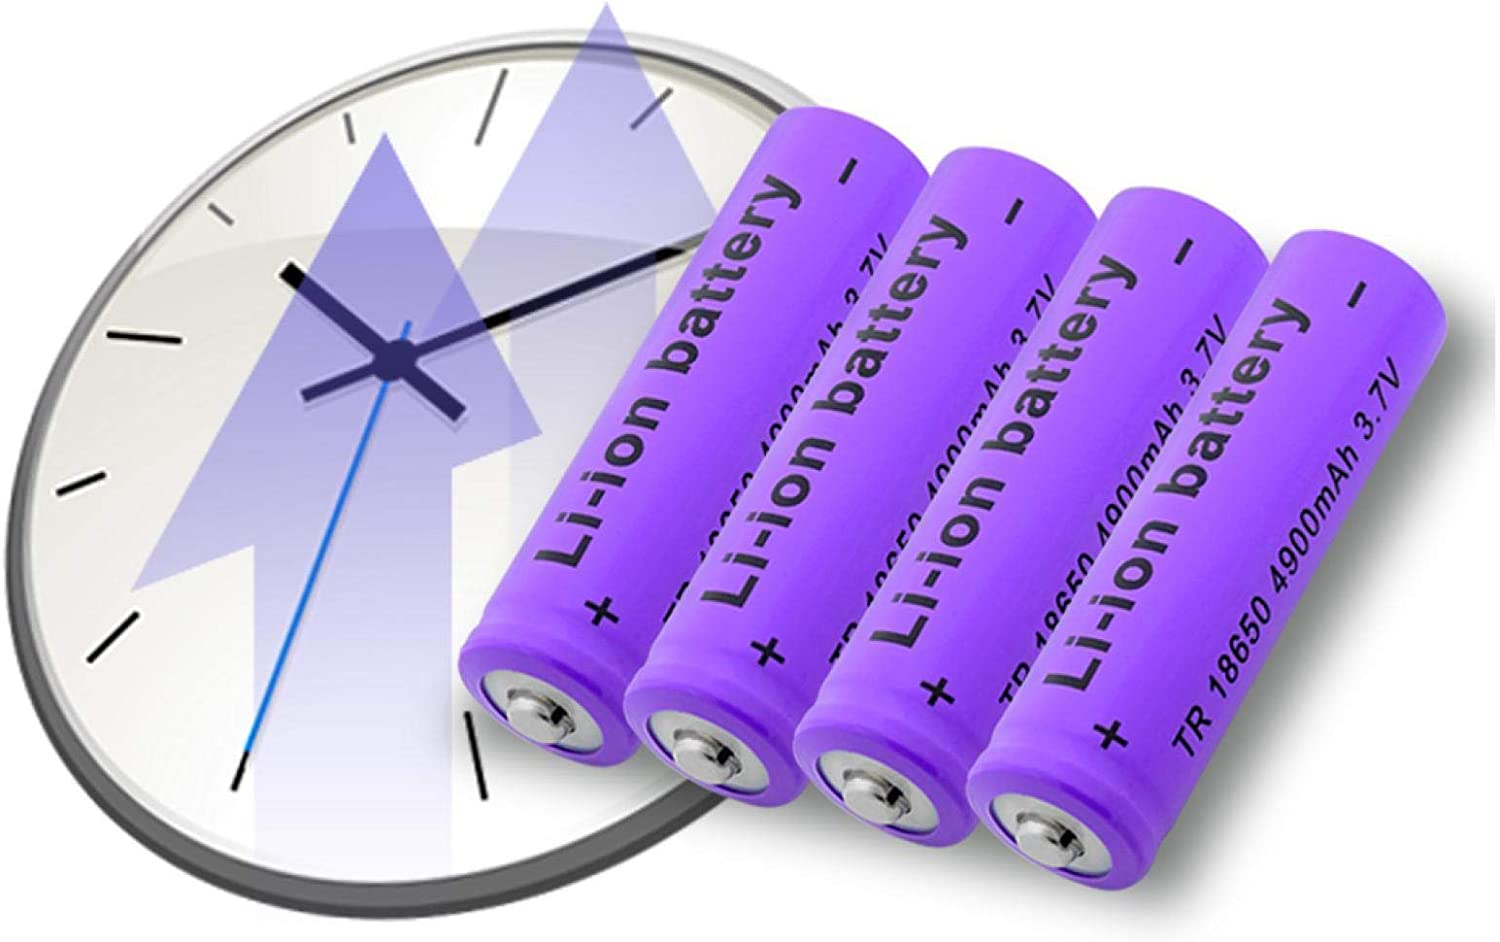 LUCKYHOUSEHOME Rechargeable 18650 Battery 3.7V 4900mAh, Li-Po Lithium Li-polymer Li-ion Replacement Batteries, For LED Flashlight Torch 4PCS 1PCS